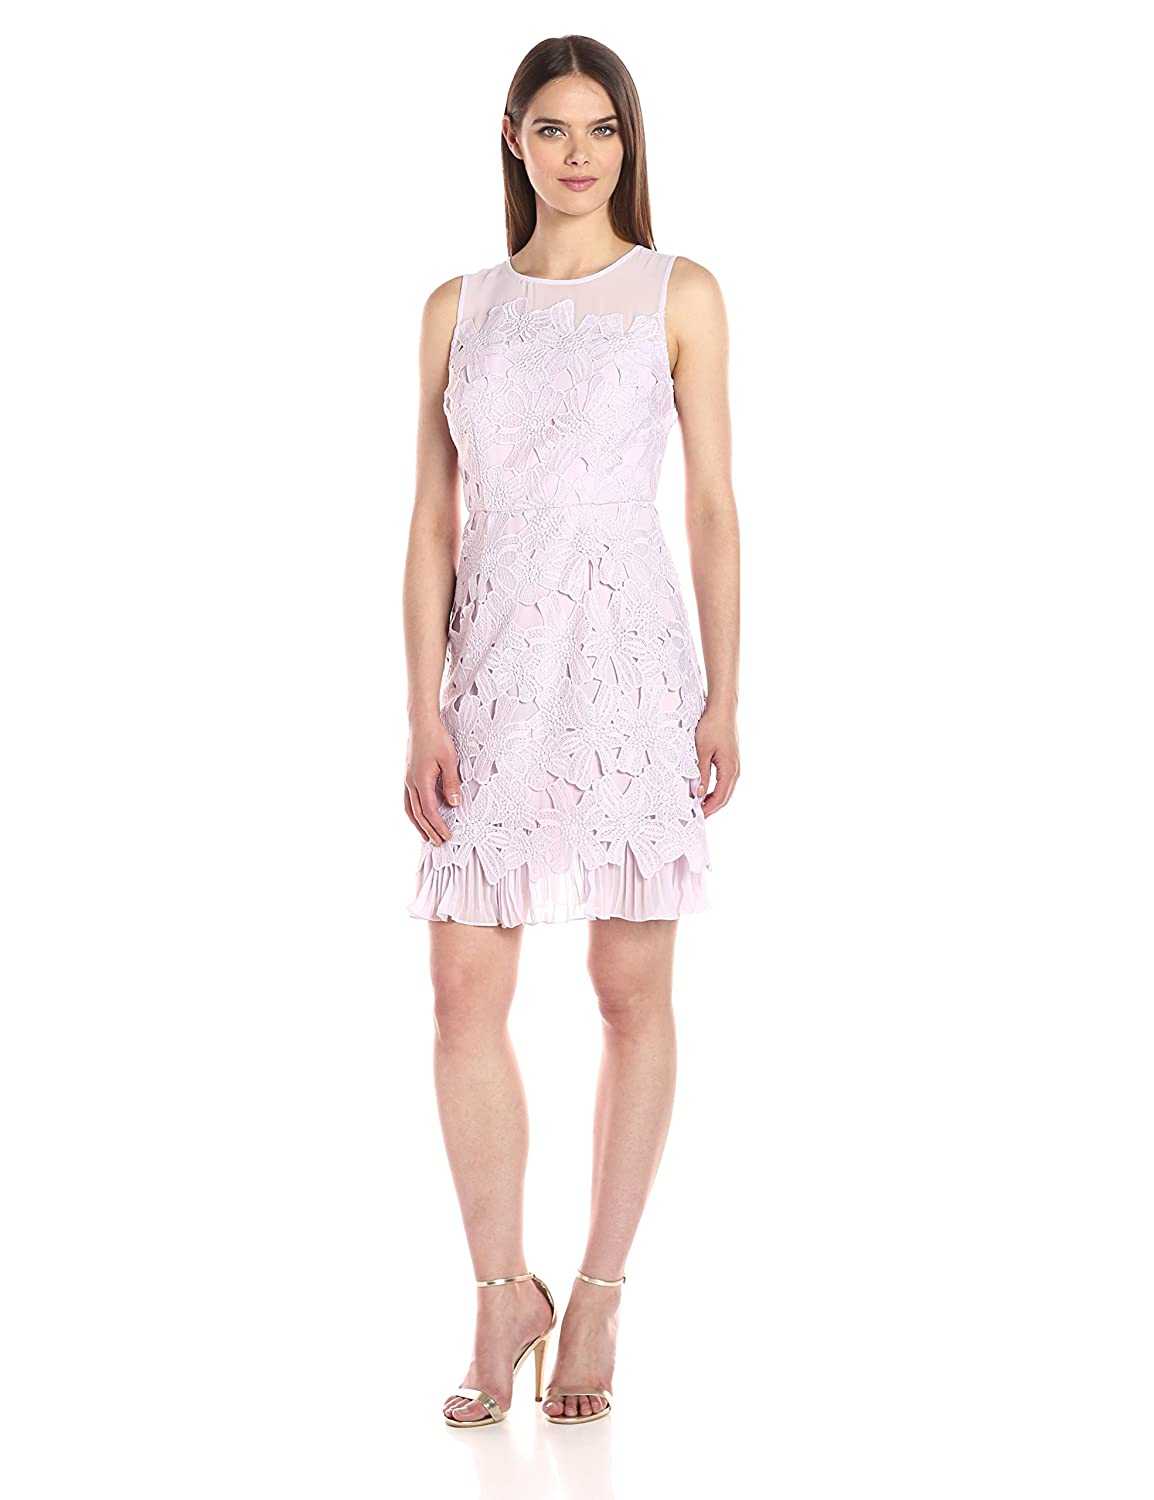 Lavender Mist Adrianna Papell Womens Celcelia Lace with Pleated Kick Skirt Dress